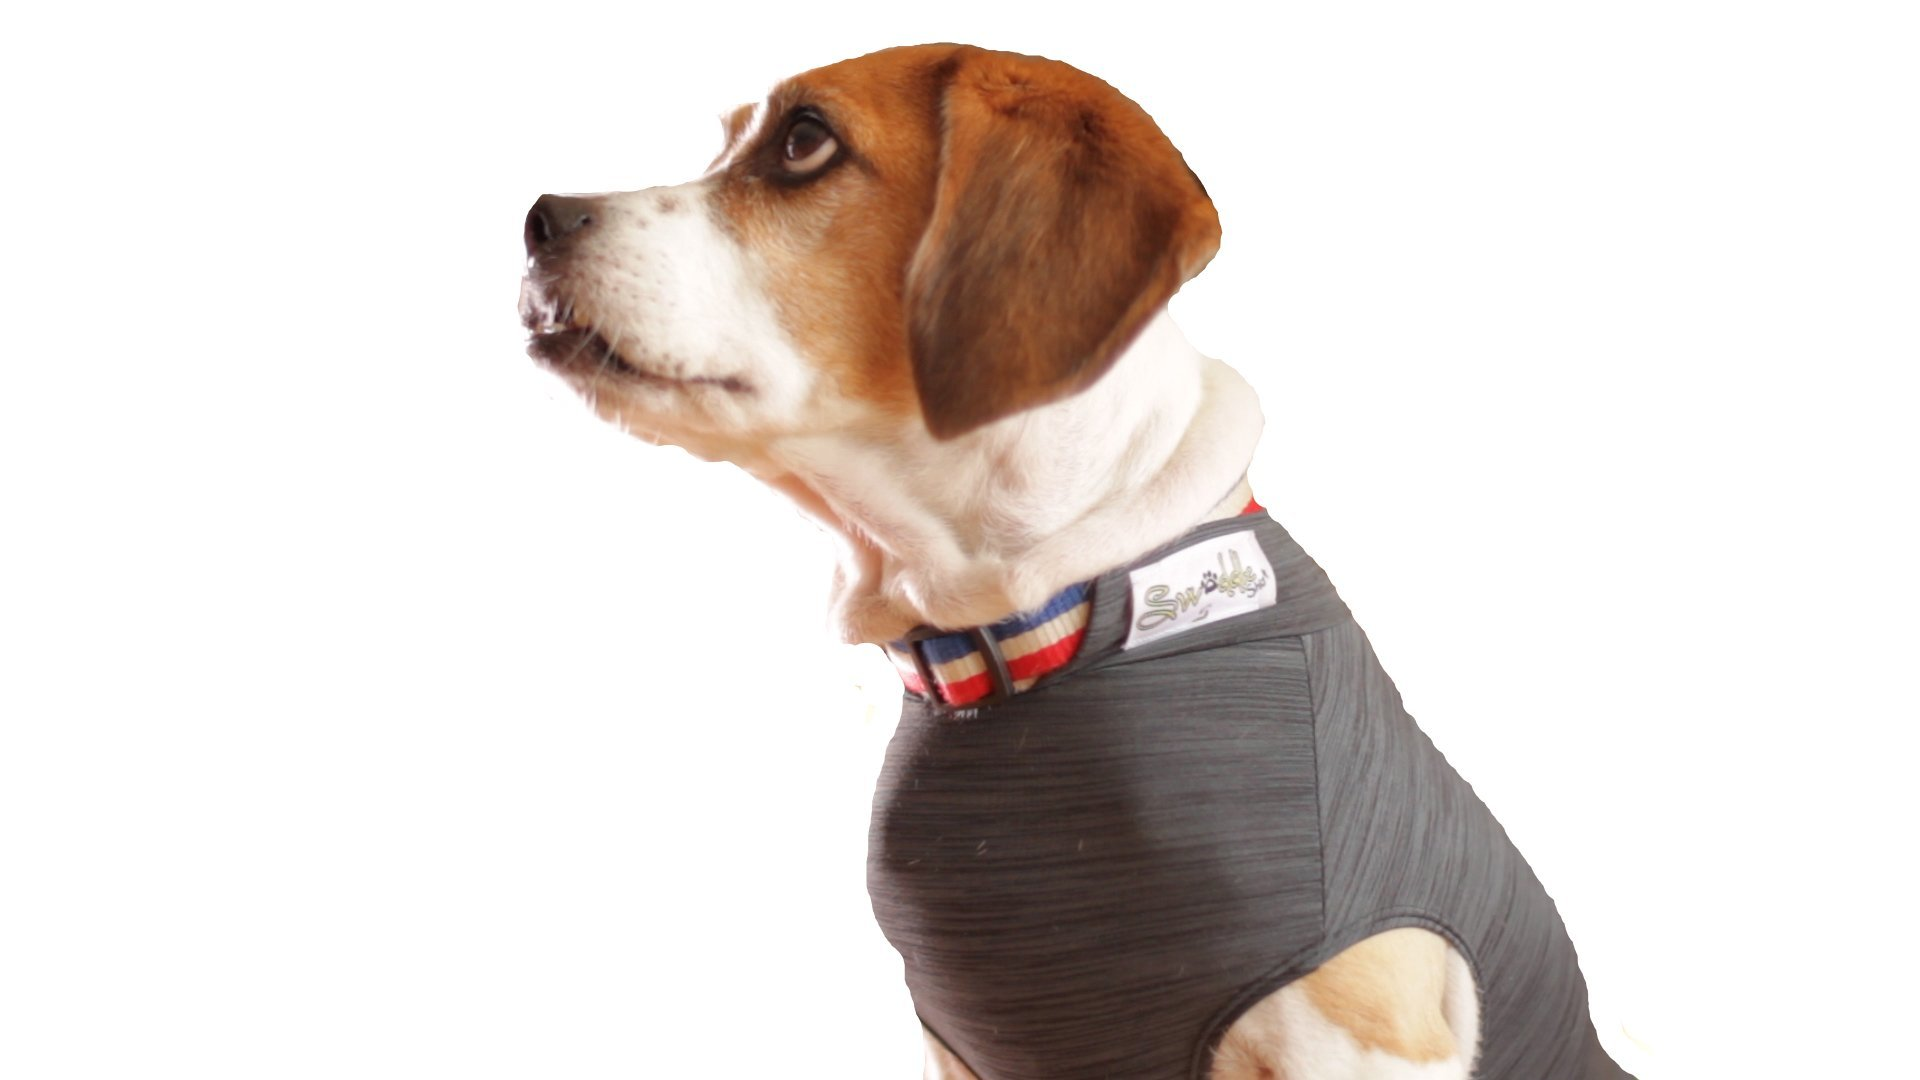 Swaddleshirt Anti Anxiety Vest For Dogs   The Best Weight Vest For Dog Anxiety Relief. Effectively Calm Dogs during Thunderstorms, Fireworks, Travel, And More. (HGrey, XSmall)